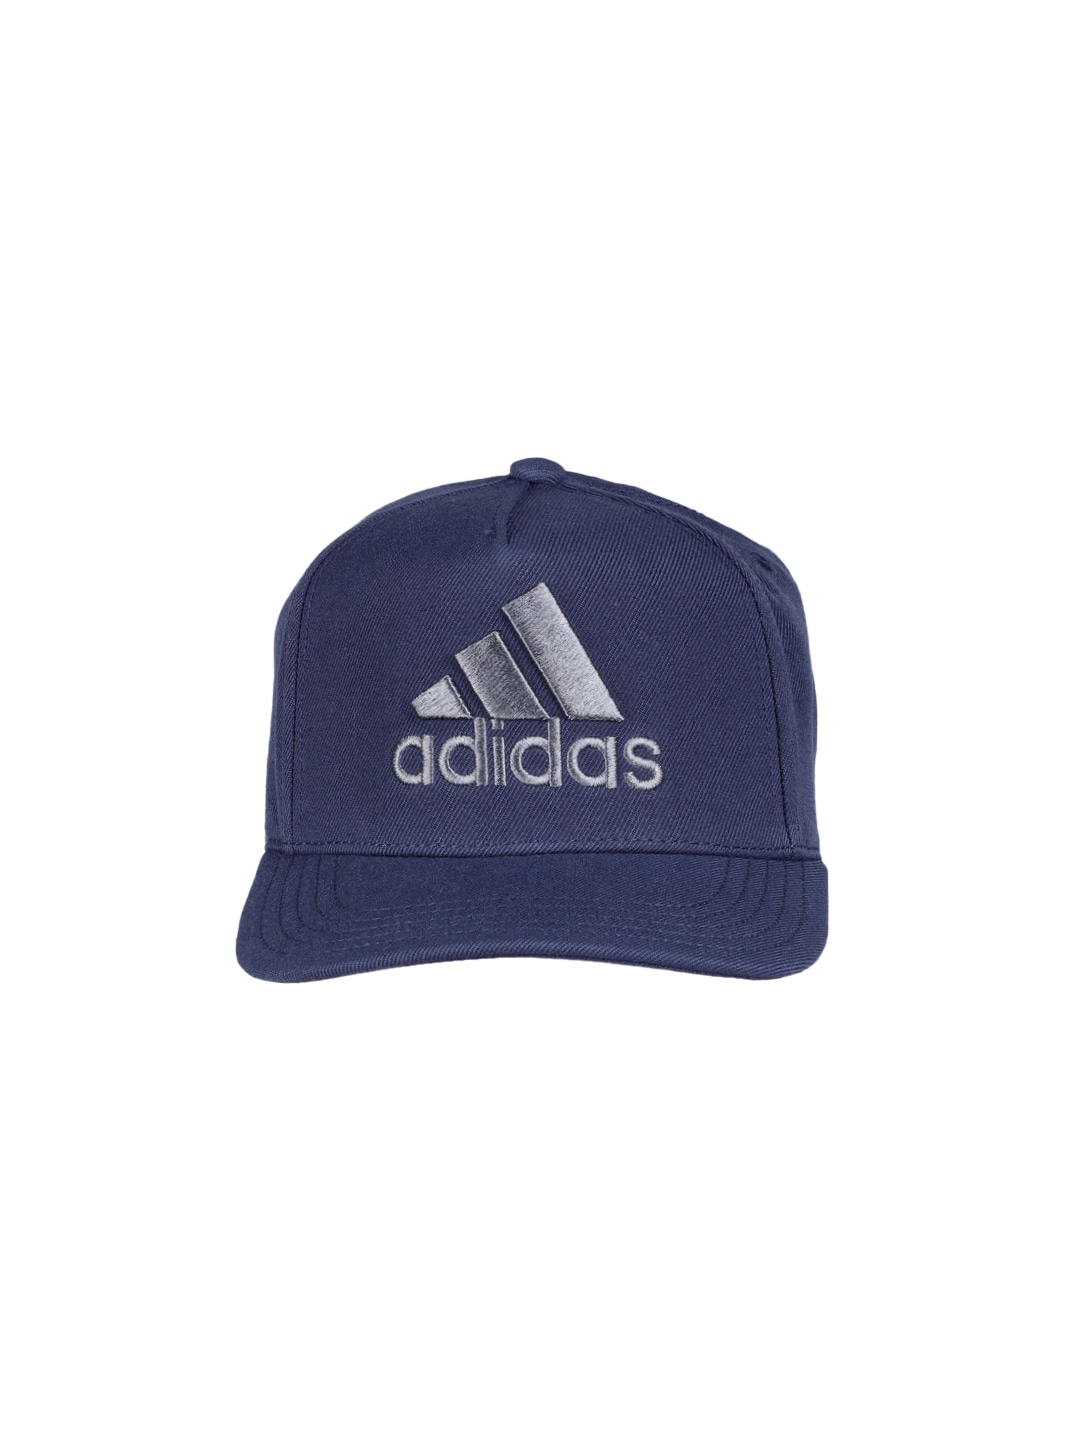 656cd839bad6a czech adidas cap buy adidas caps for women girls online myntra 0a241 82587